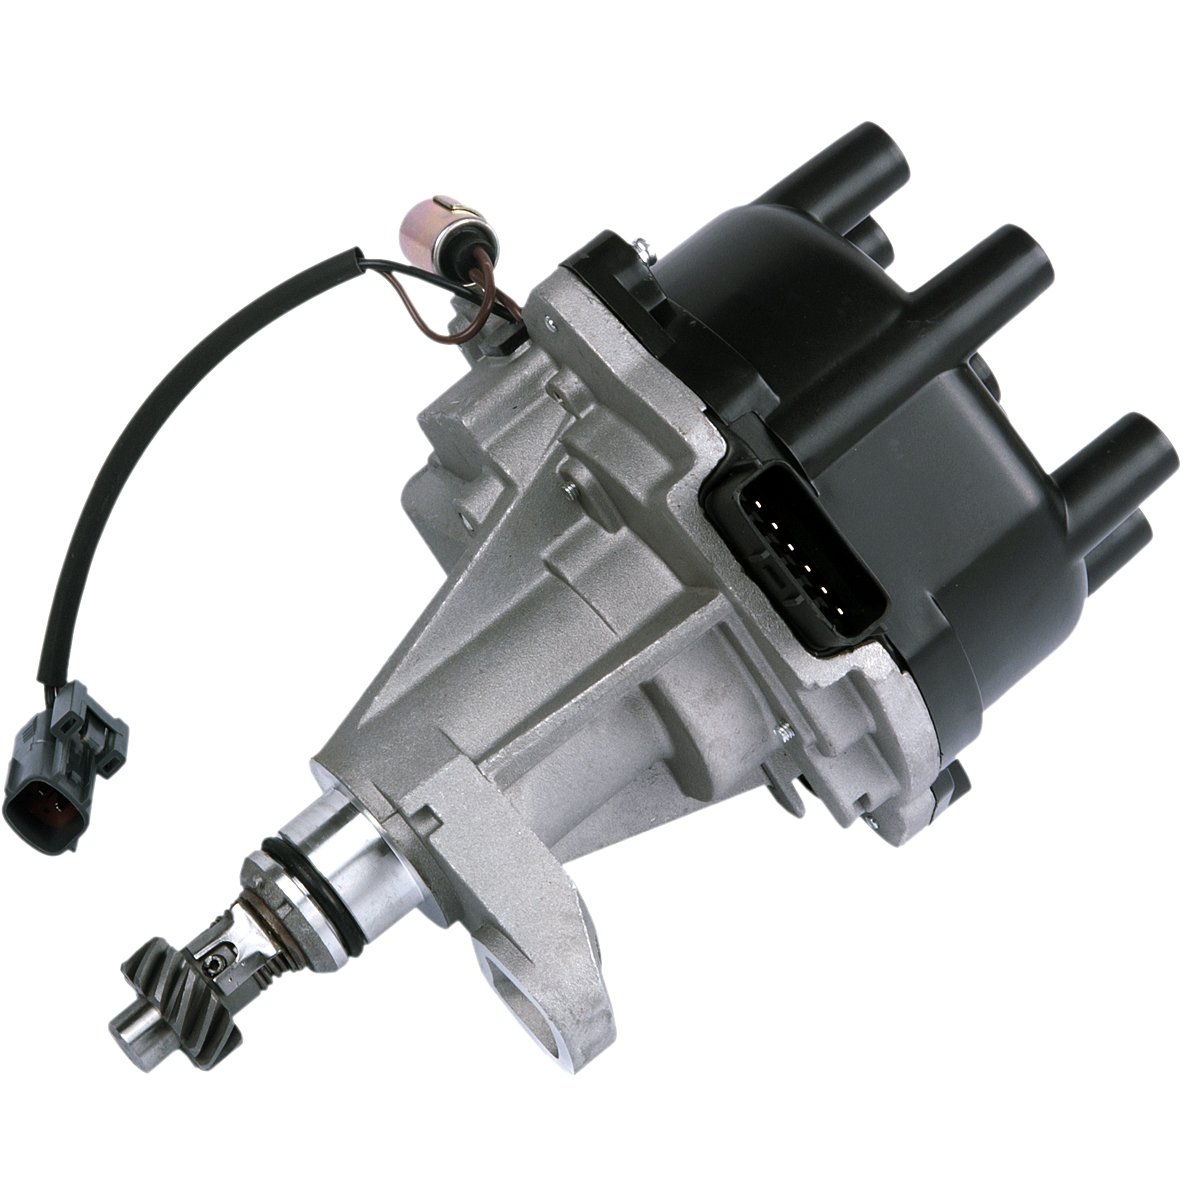 Brand New Compatible Ignition Distributor w/ Cap & Rotor 22100-1W601 22100-1W600 Pathfinder Frontier Xterra Quest Villager 3.3L V6 22100-0W601 22100-0W602 FDW-1W601